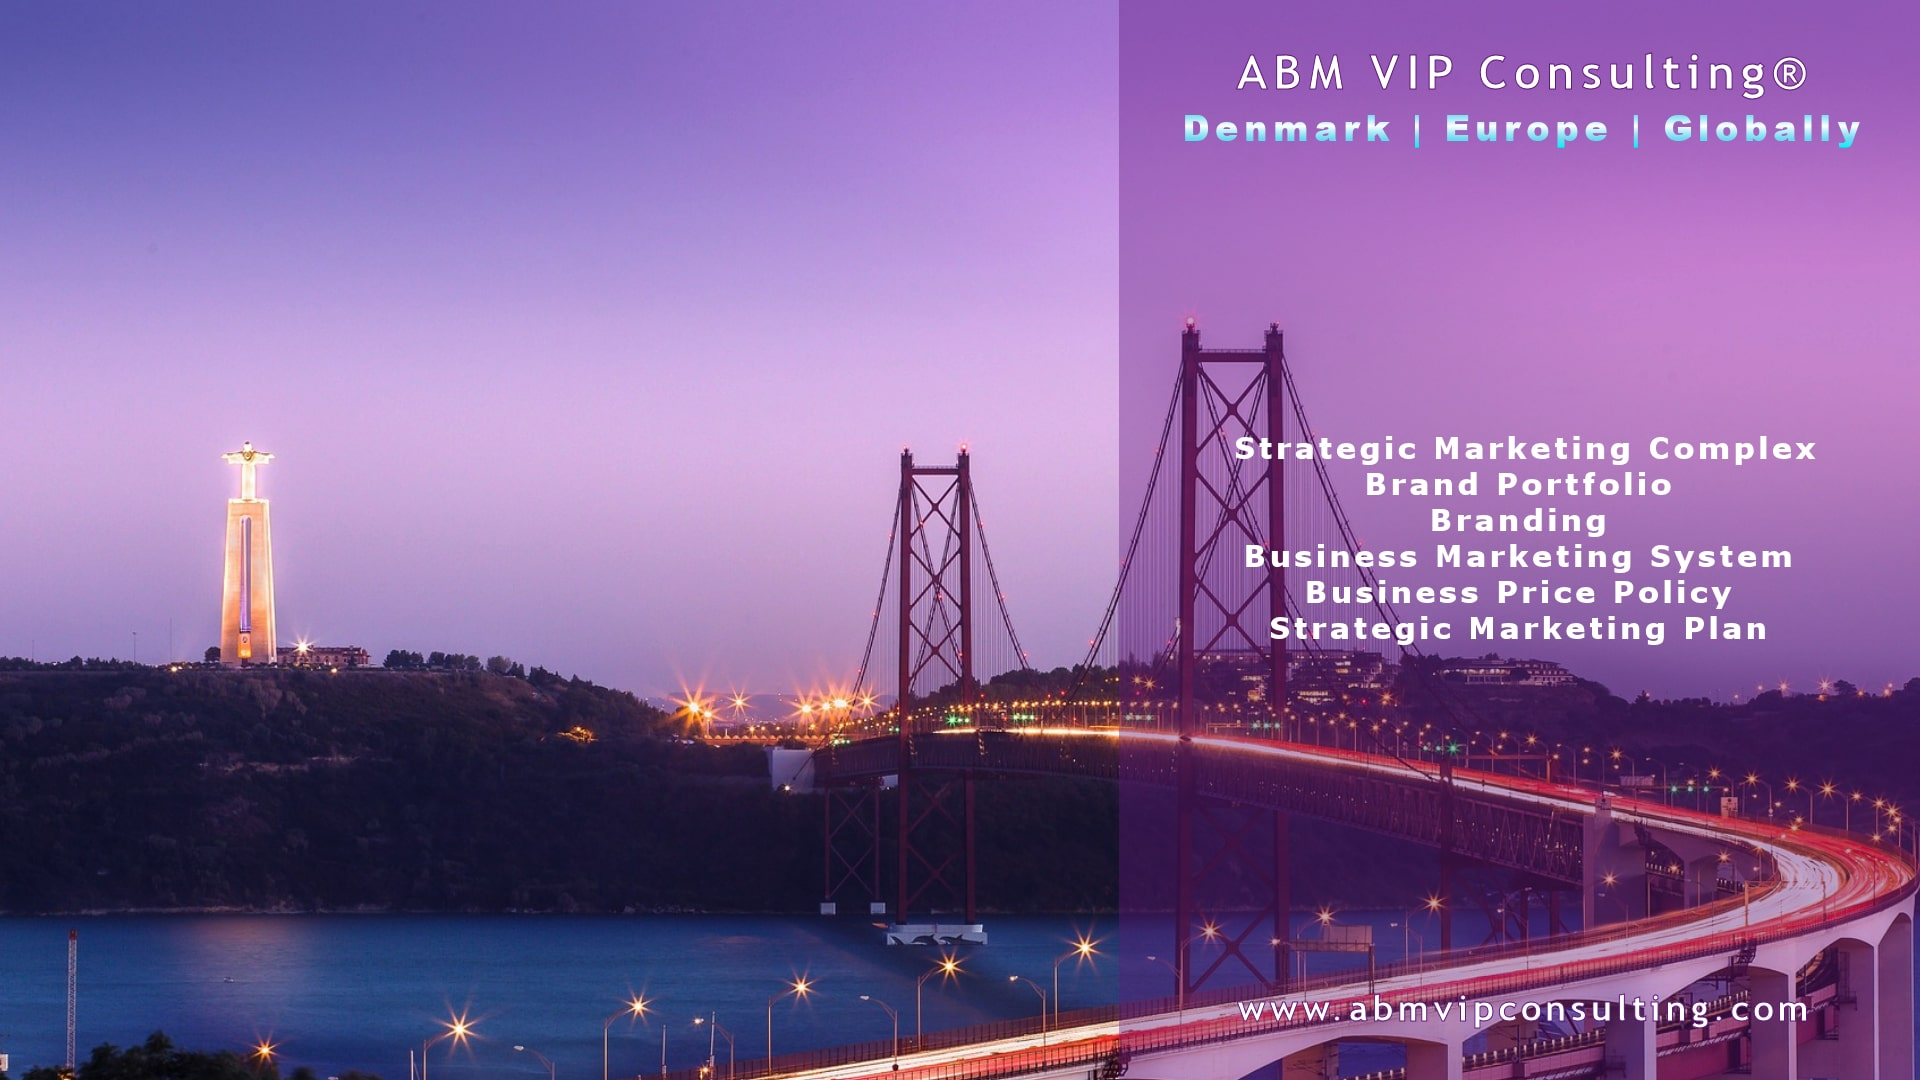 <p>ABM VIP Consulting® Management Consulting</p>